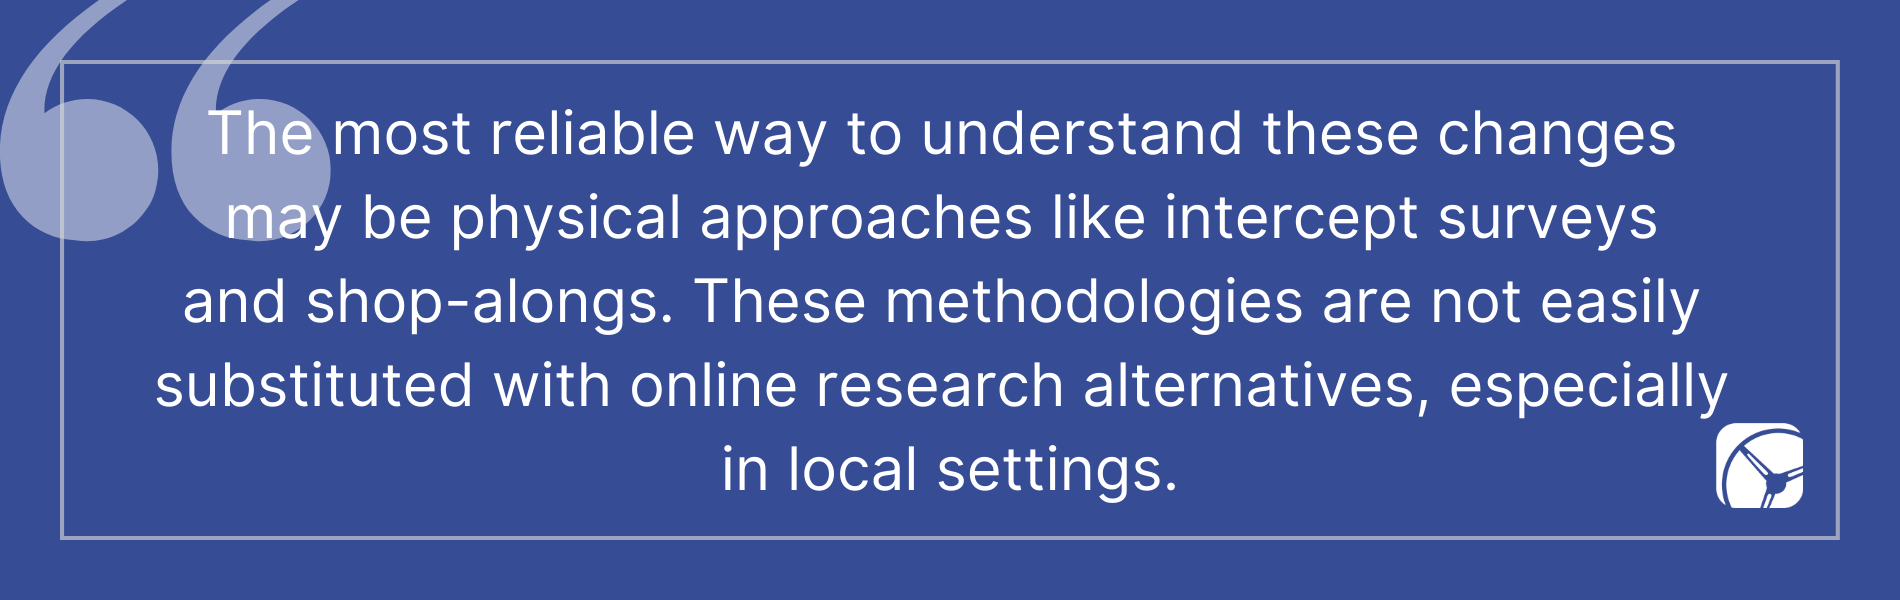 The most reliable way to understand these changes  may be physical approaches like intercept surveys  and shop-alongs. These methodologies are not easily  substituted with online research alternatives, especially  in local settings.